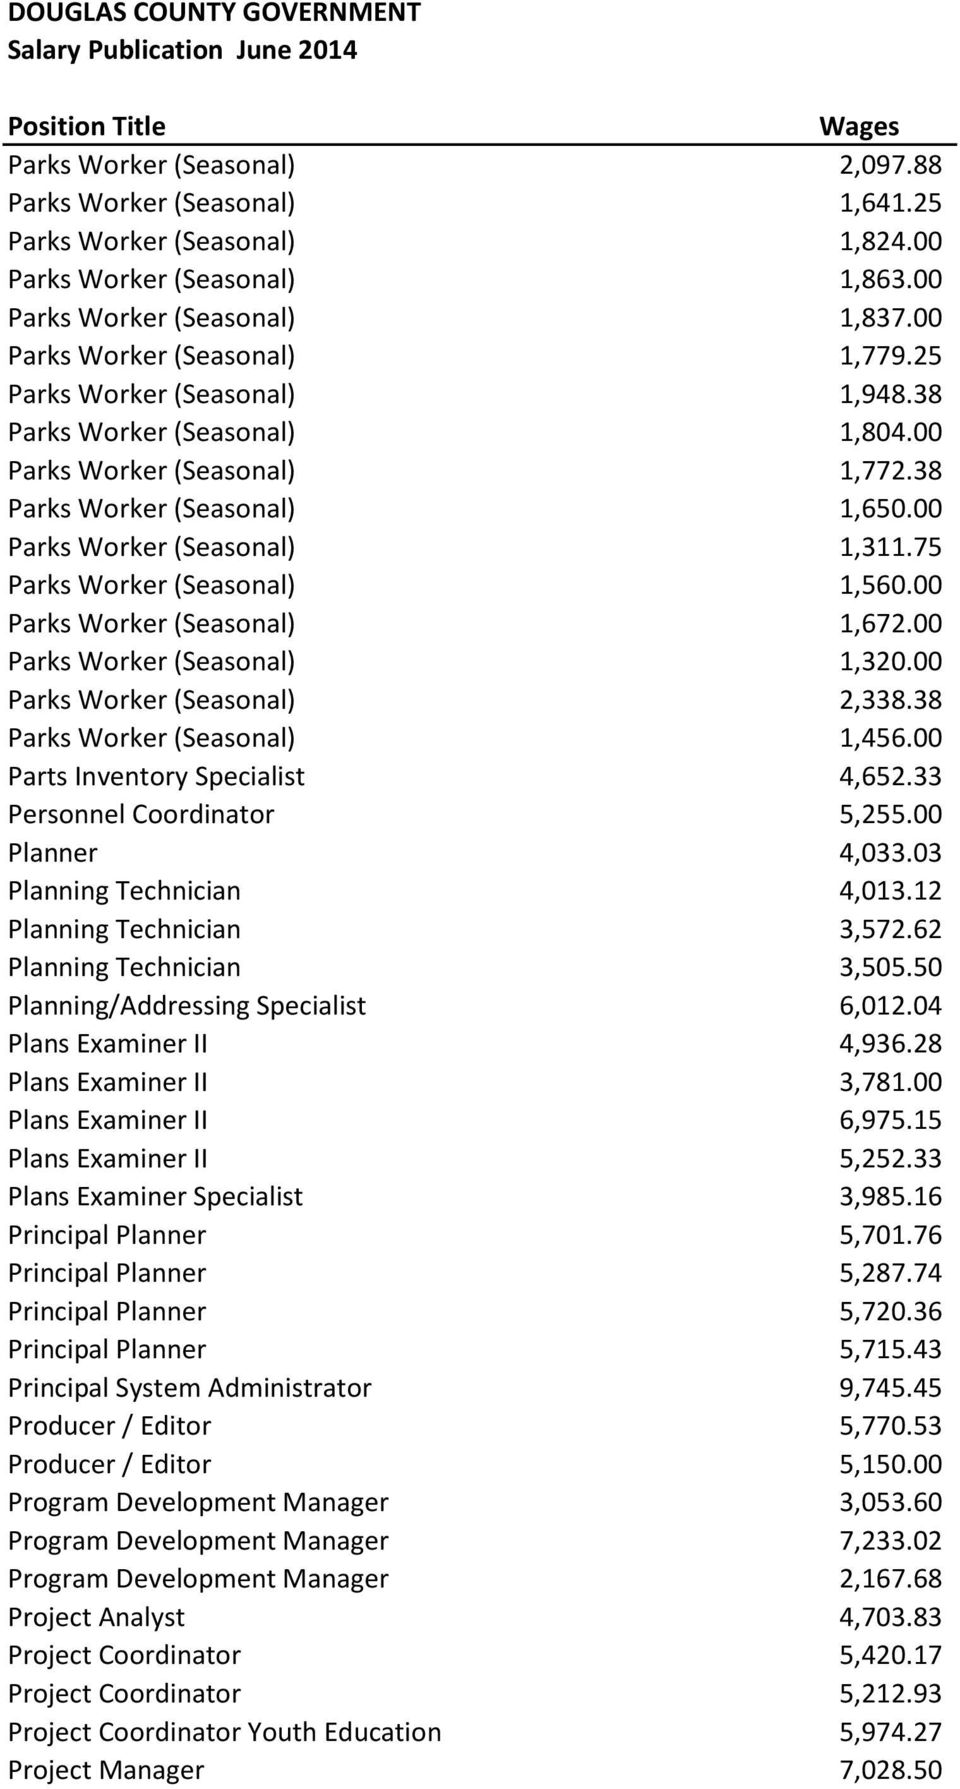 00 Parks Worker (Seasonal) 1,672.00 Parks Worker (Seasonal) 1,320.00 Parks Worker (Seasonal) 2,338.38 Parks Worker (Seasonal) 1,456.00 Parts Inventory Specialist 4,652.33 Personnel Coordinator 5,255.